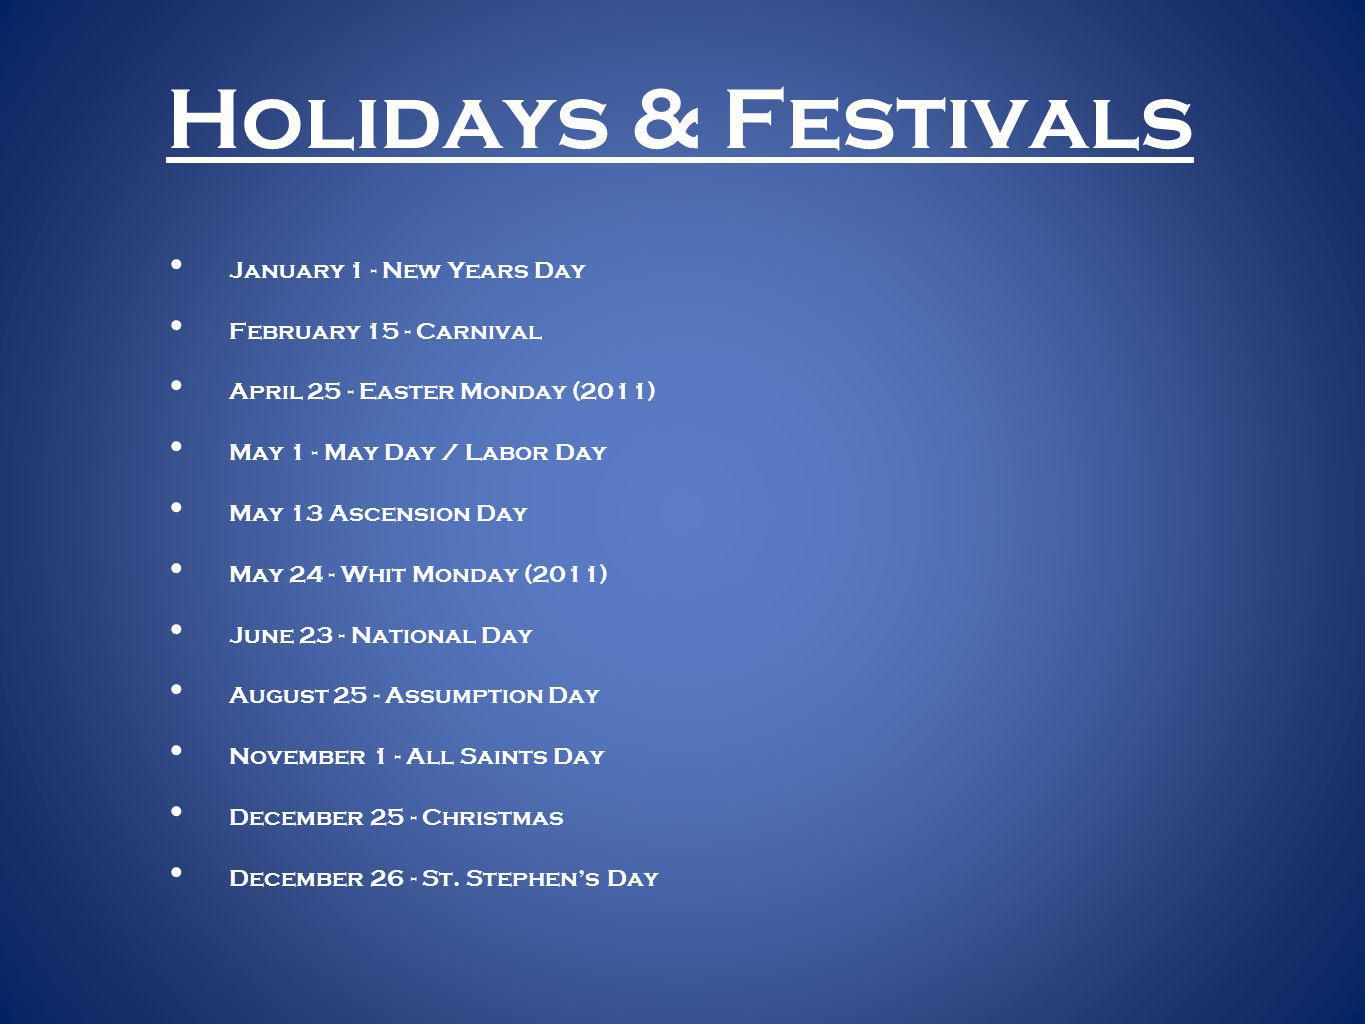 Holidays & Festivals January 1 - New Years Day February 15 - Carnival April 25 - Easter Monday (2011) May 1 - May Day / Labor Day May 13 Ascension Day May 24 - Whit Monday (2011) June 23 - National Day August 25 - Assumption Day November 1 - All Saints Day December 25 - Christmas December 26 - St.